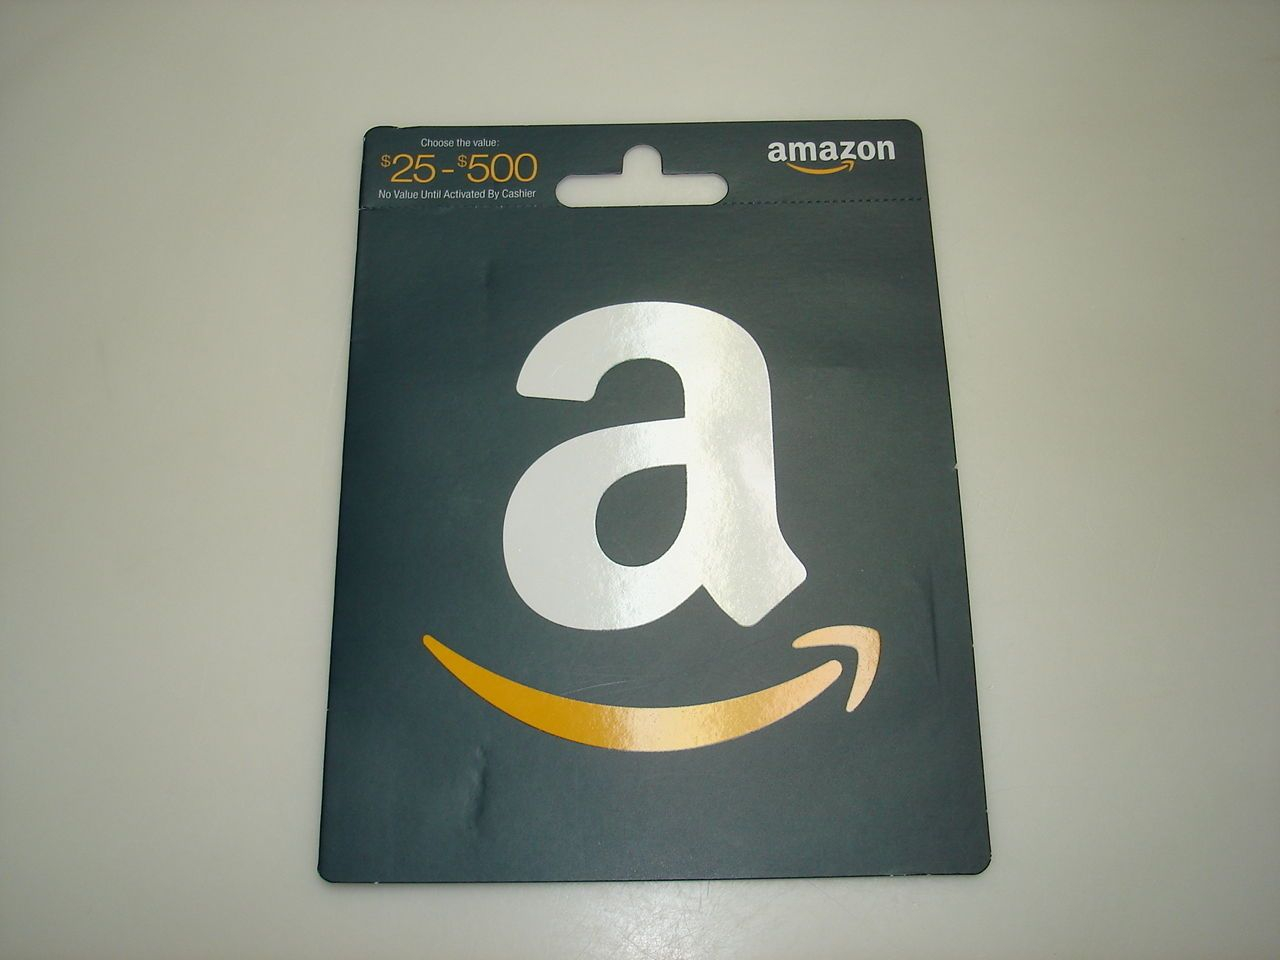 25 New Amazon Gift Card Free Shipping Http Searchpromocodes Club 25 New Amazon Gift Card Free Amazon Gift Card Free Amazon Gift Cards Amazon Gifts